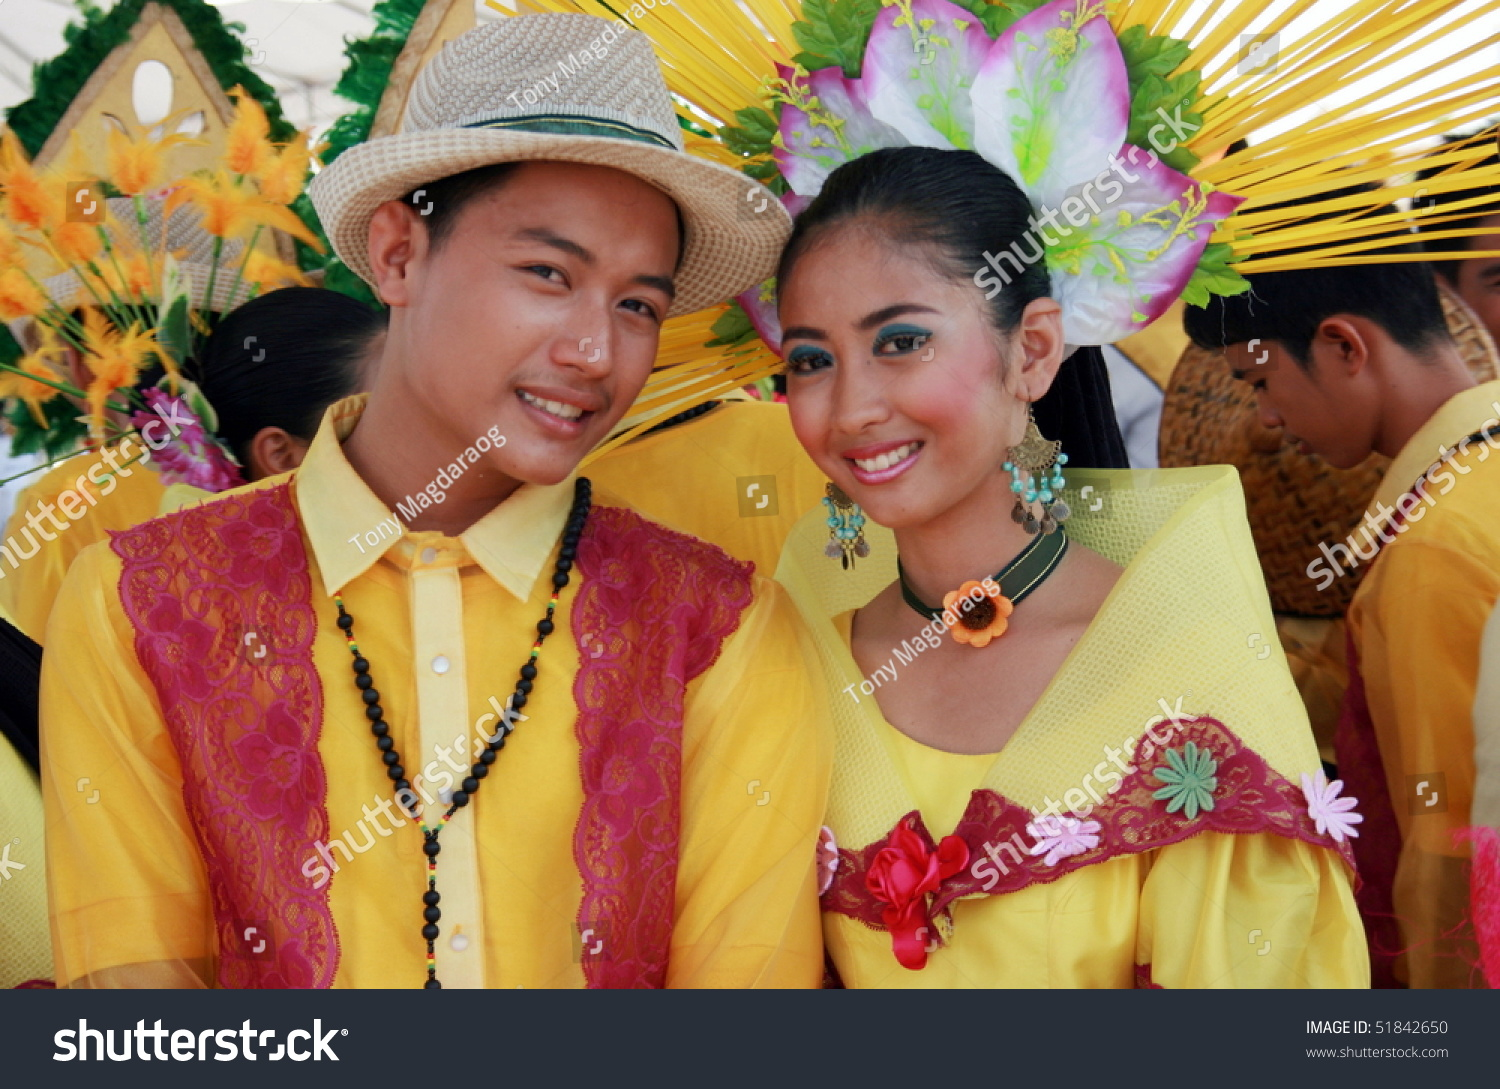 filipino customs and traits Filipino customs and traditions filipino culture is unique compared to other asian countries  having close family ties is also one of their unique traits.